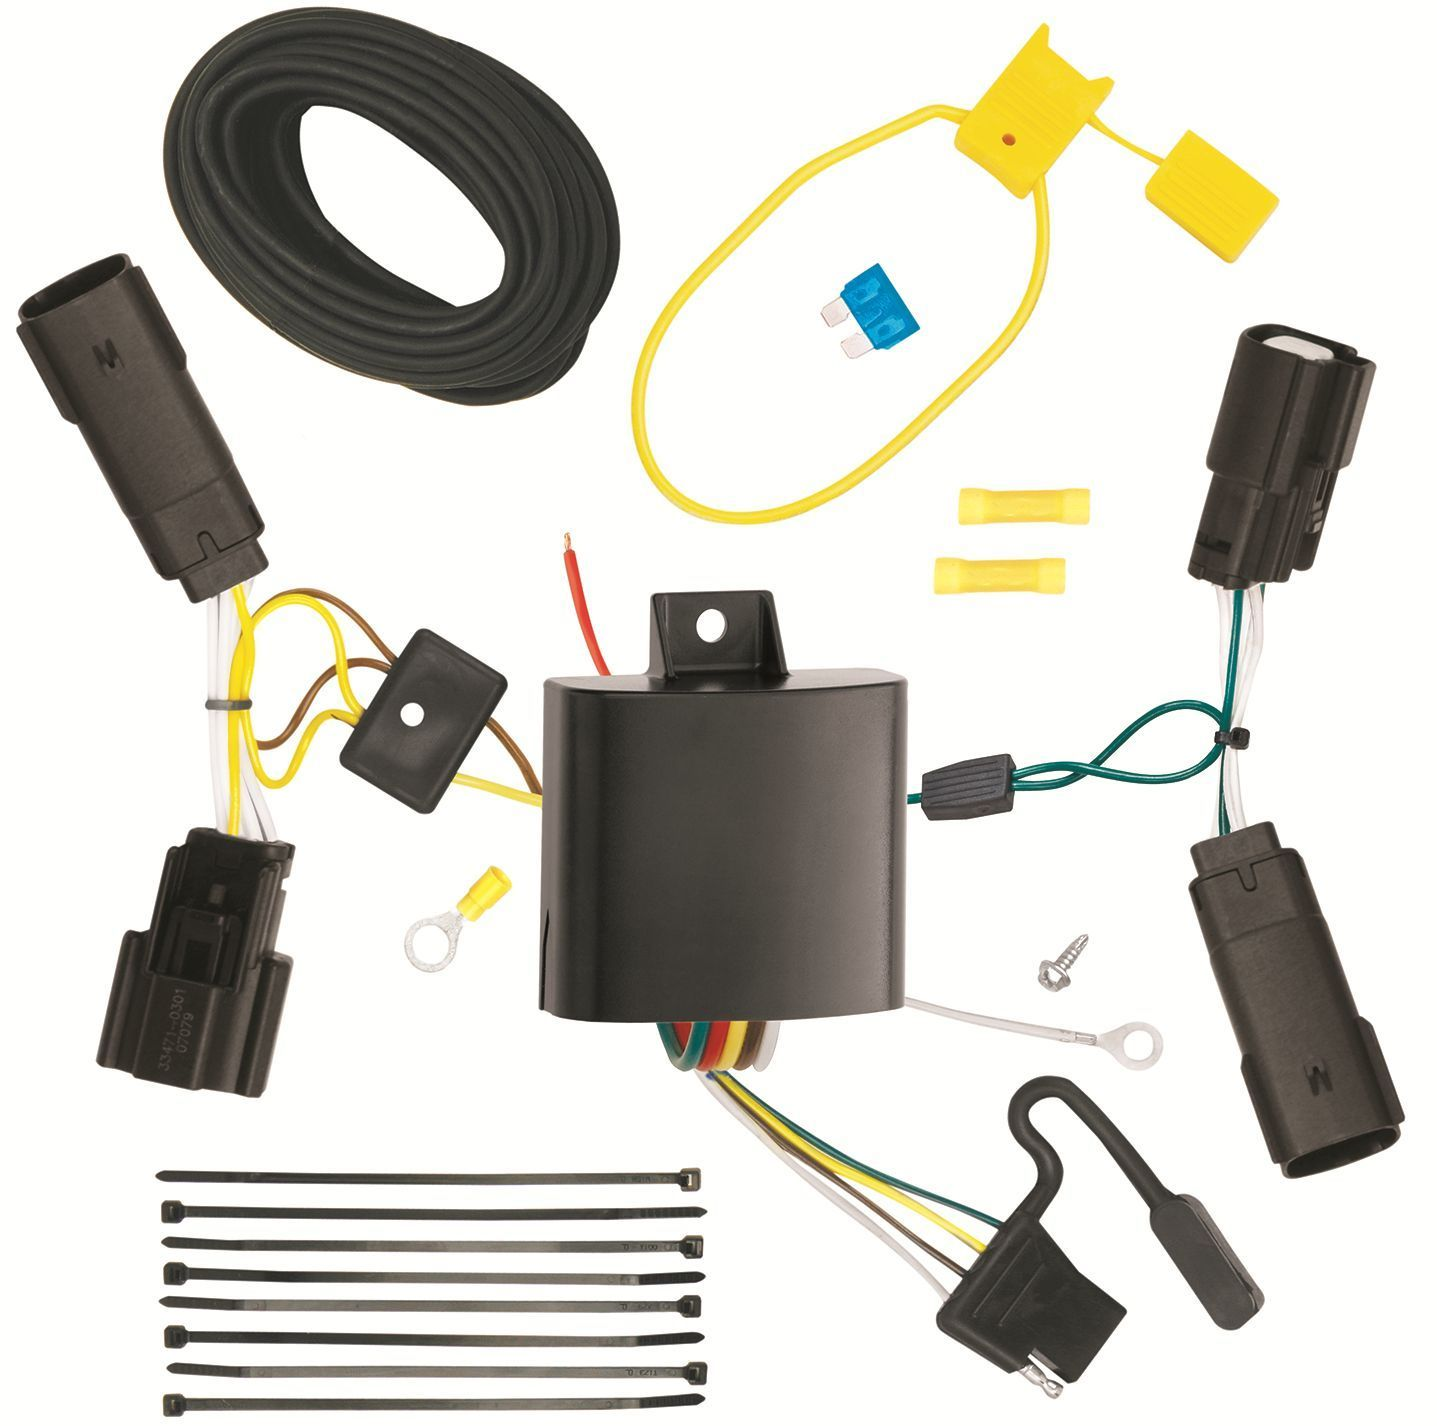 hight resolution of trailer wiring harness kit for 13 19 ford and similar items s l1600